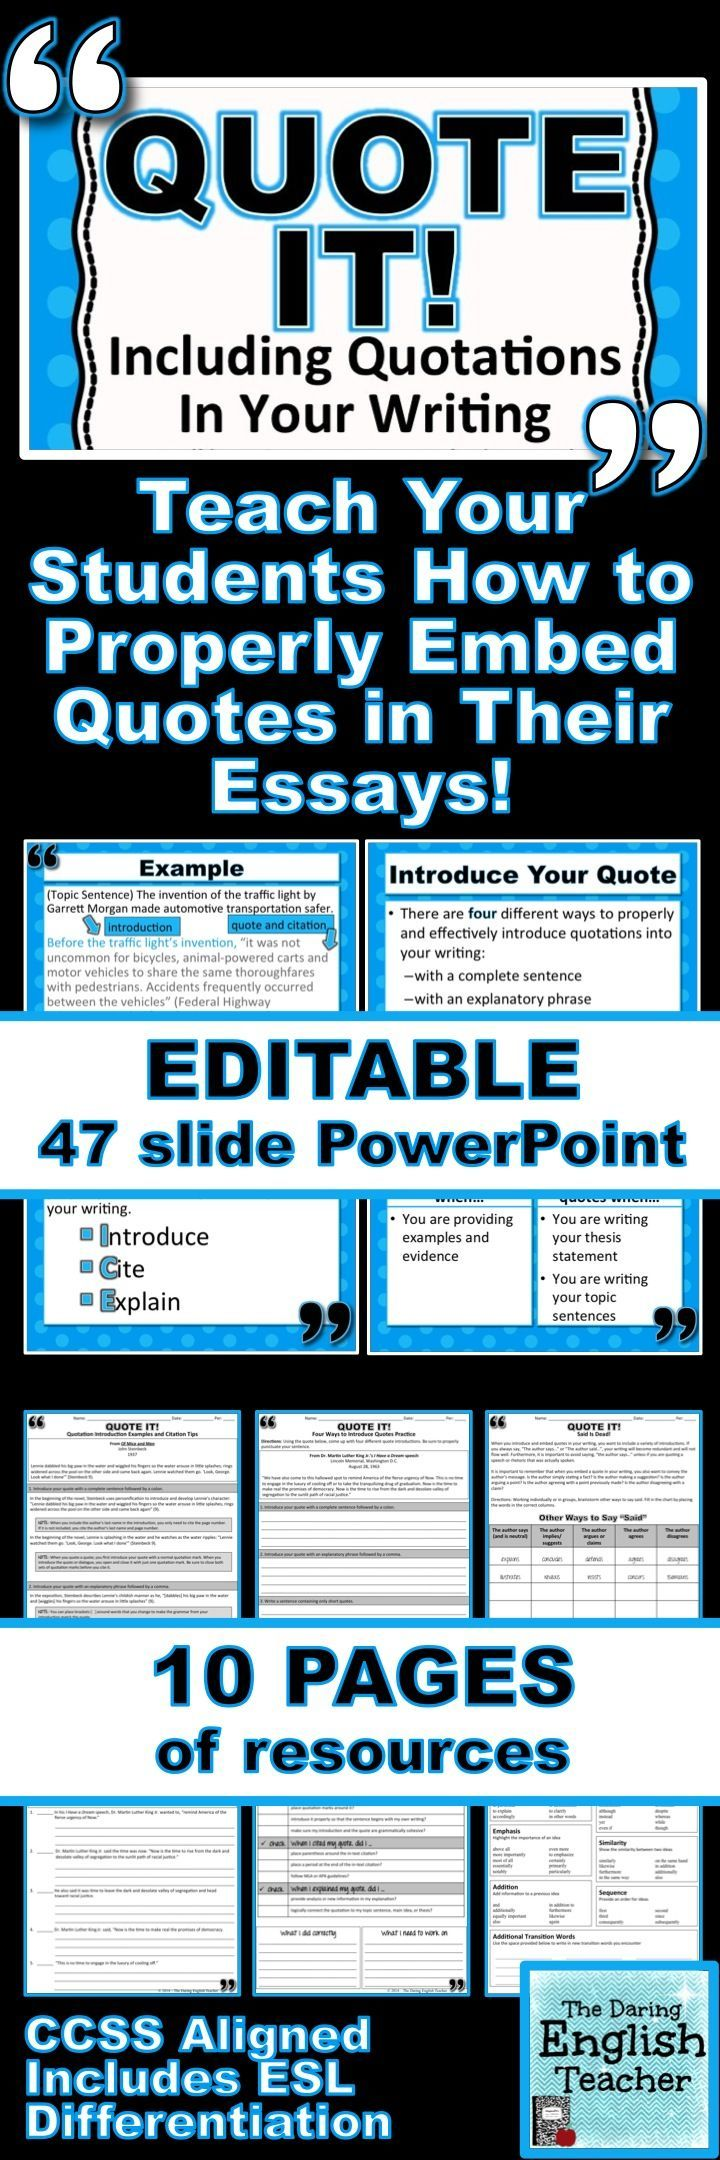 teach essay writing esl students During this esl writing game, you should write an essay together with your students, but in a slow-paced manner, sentence by sentence when writing, you will teach them the typical essay structure, such as introductory, supporting, and concluding sentences.